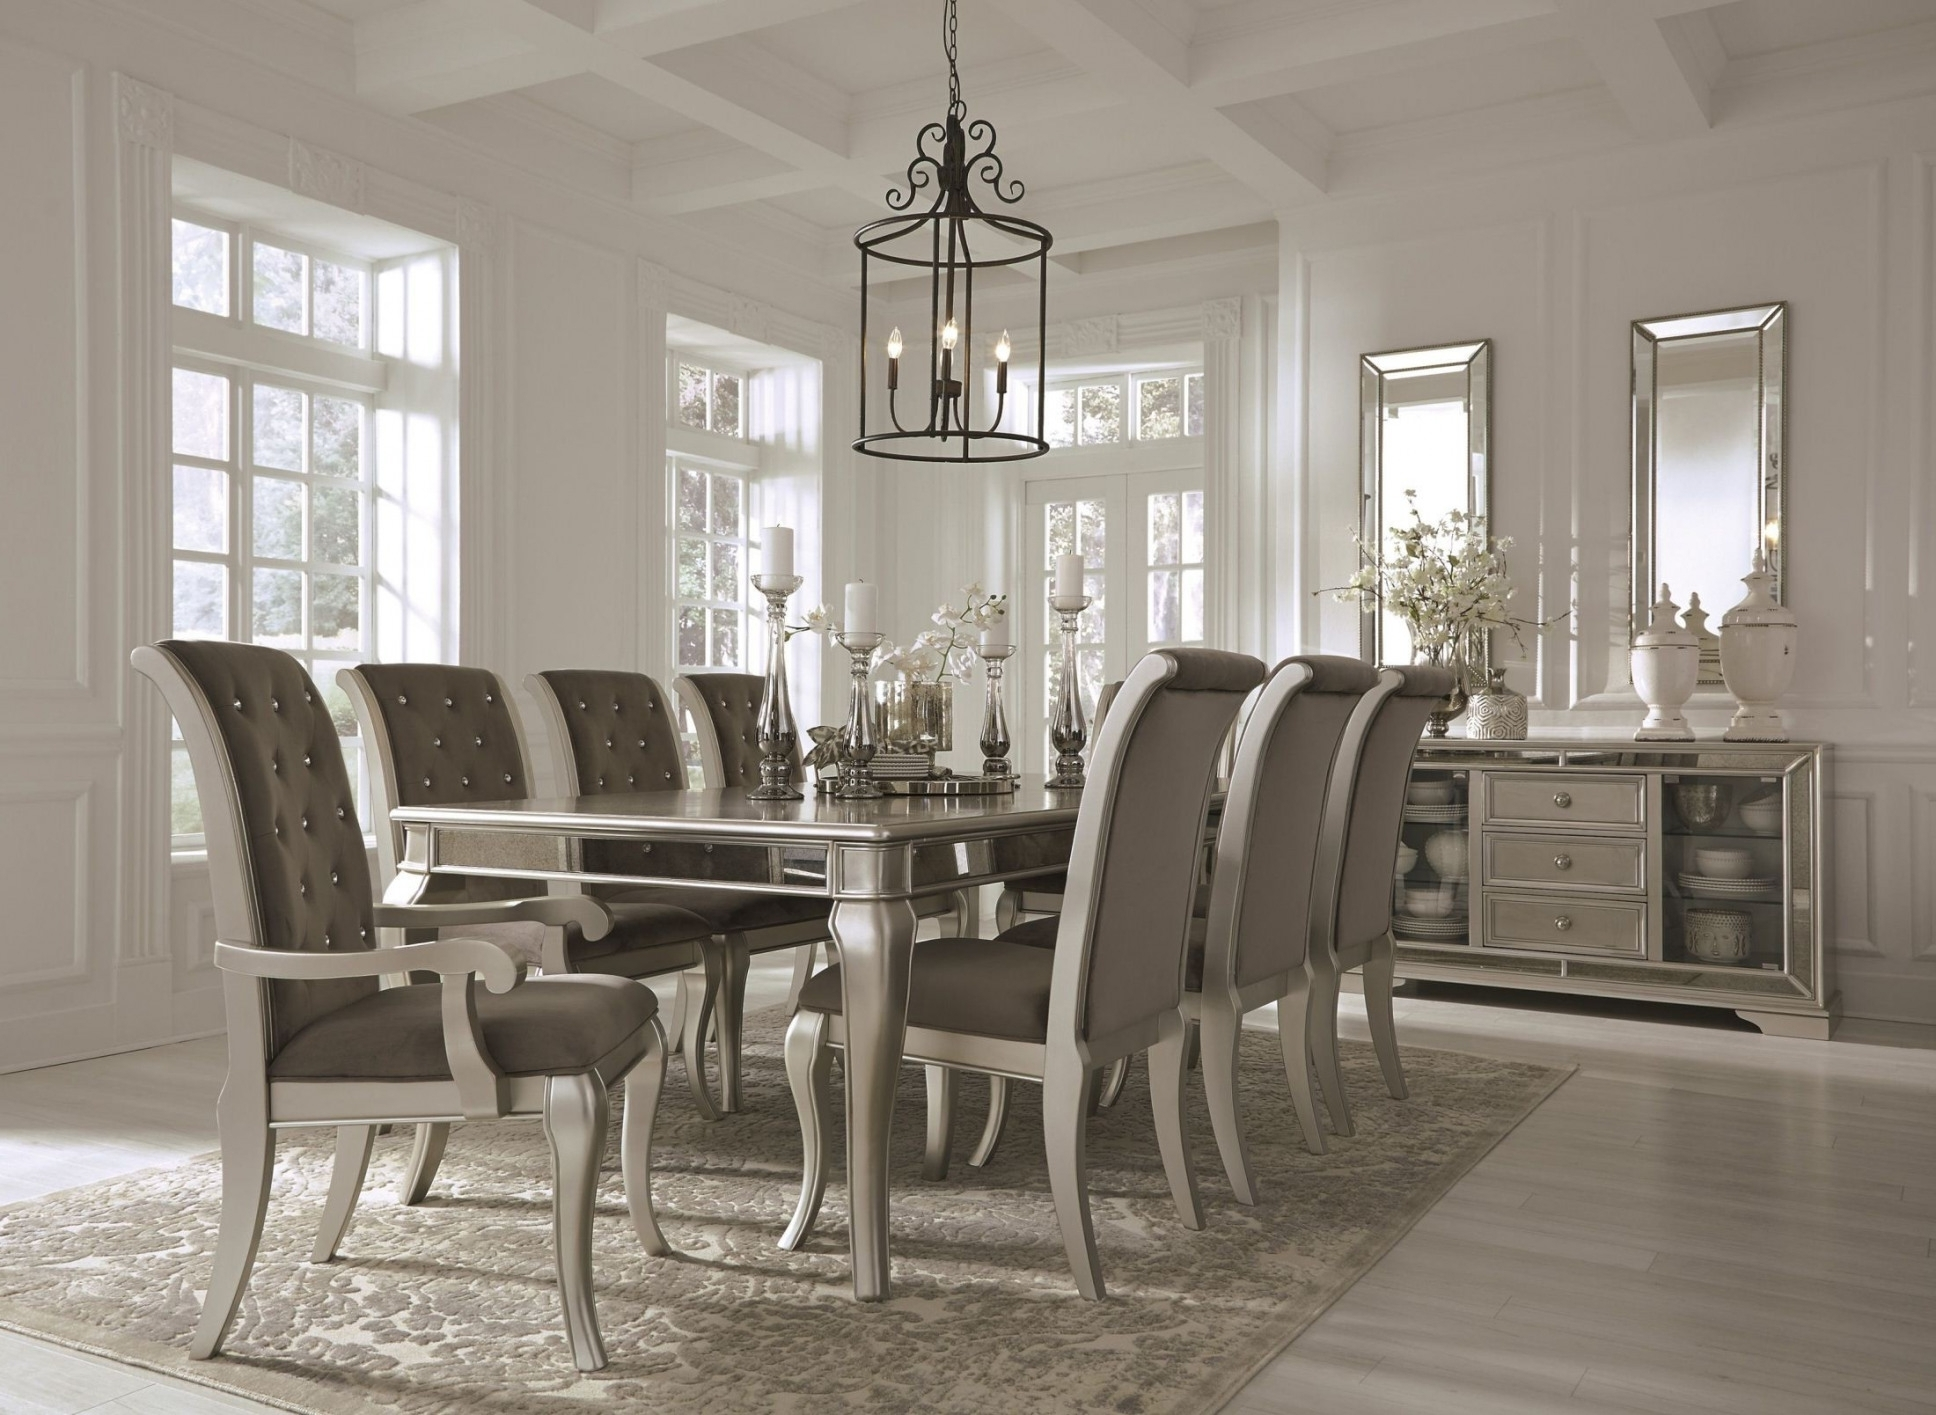 Extendable Dining Table Sets with regard to Best and Newest Dining Room Sets Extendable Table